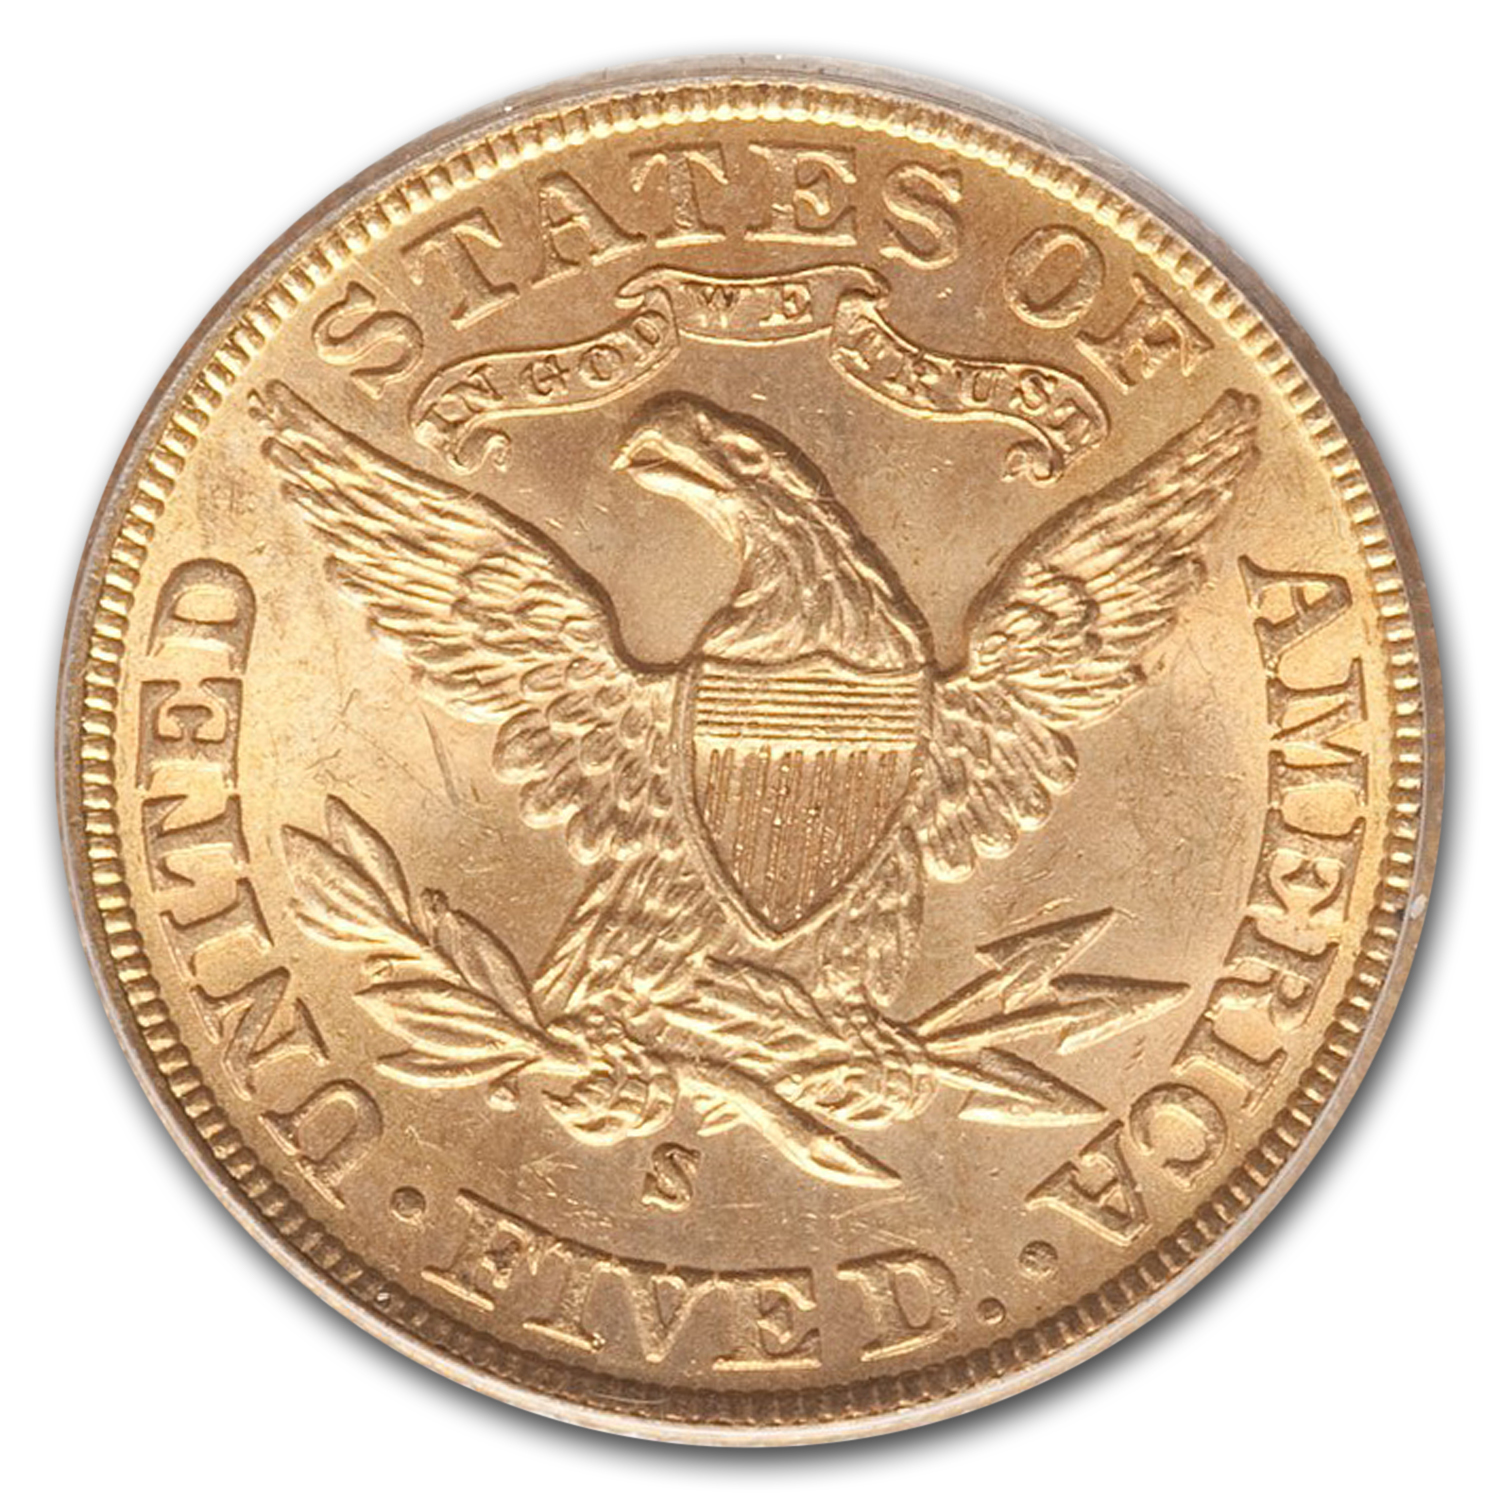 1900-S $5 Liberty Gold Half Eagle MS-63 PCGS